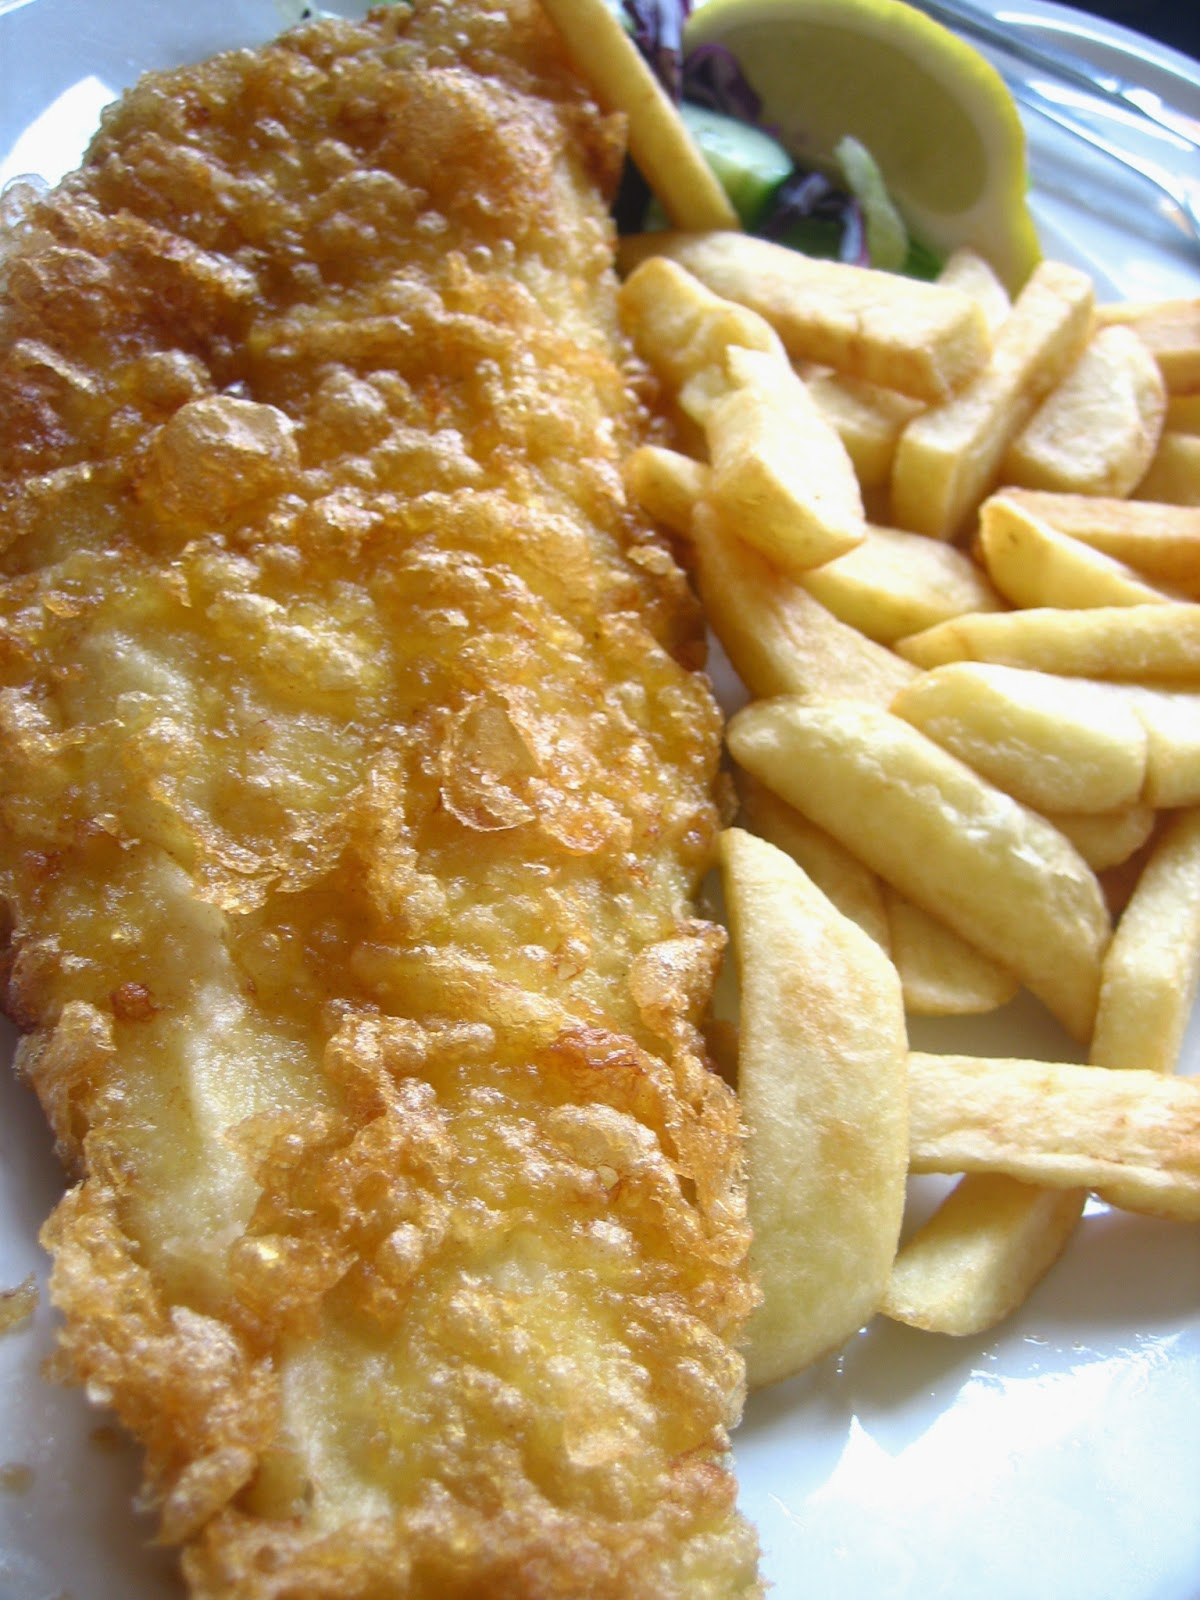 http://www.telegraph.co.uk/news/worldnews/europe/italy/11426124/Italy-lays-claim-to-inventing-fish-and-chips-and-bringing-it-to-the-UK.html